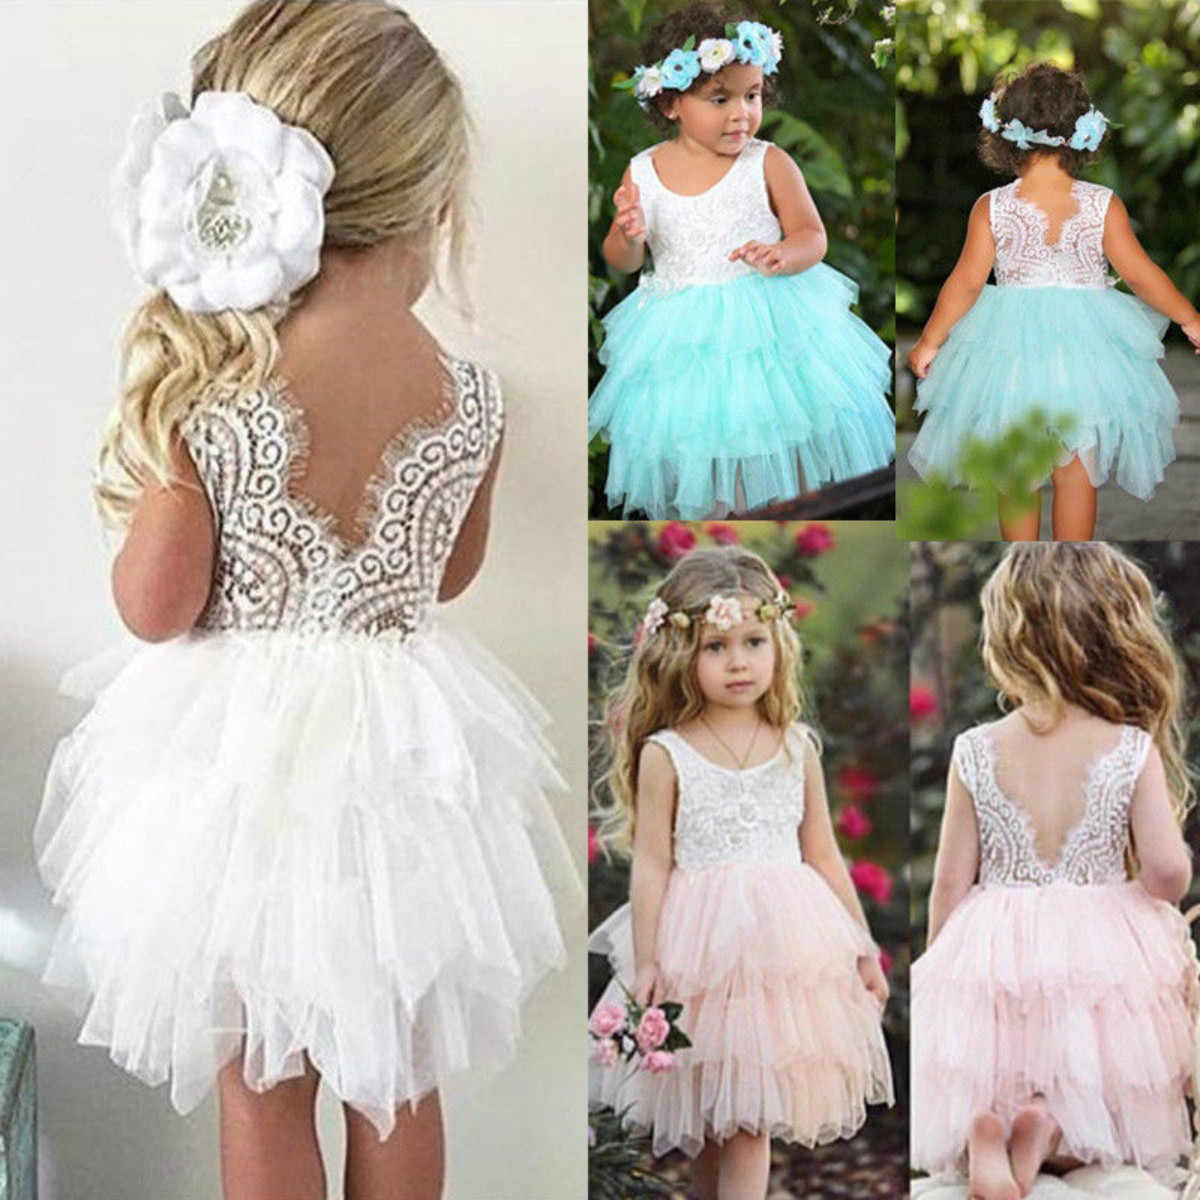 826aa24978 Kid Baby Girl Sleeveless Lace Hollow Out Tulle Tutu Dress Party Wedding  Princess Sundress Hot